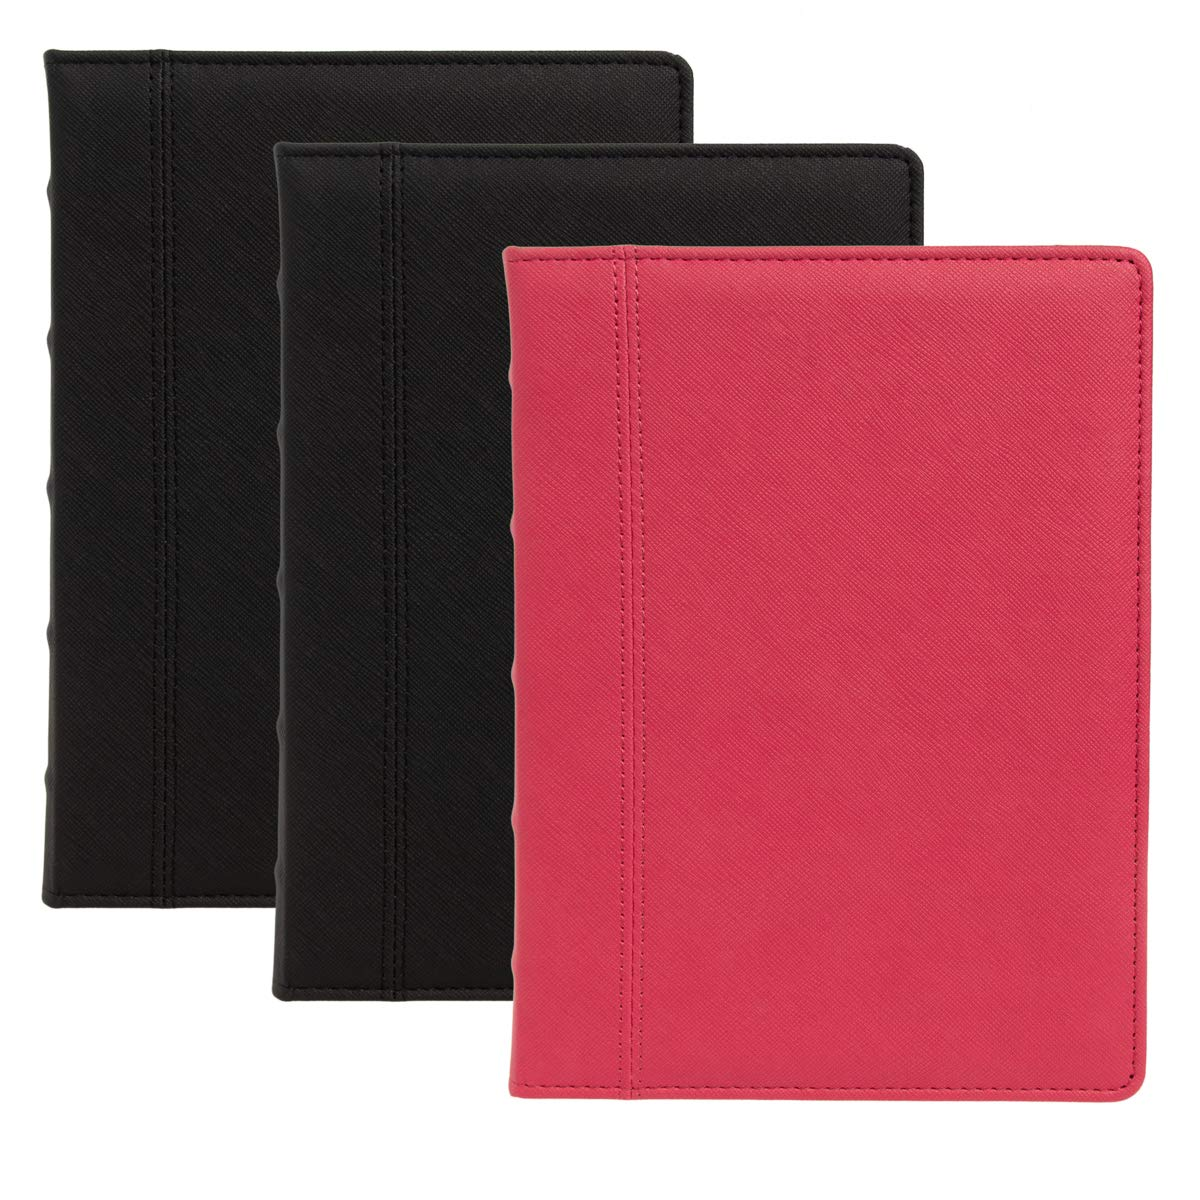 C.R. Gibson (Set of 3) Jumbo Writing Journals With Lined Pages For Women Men 400pg Large Notebook, 7.3'' x 9.6''